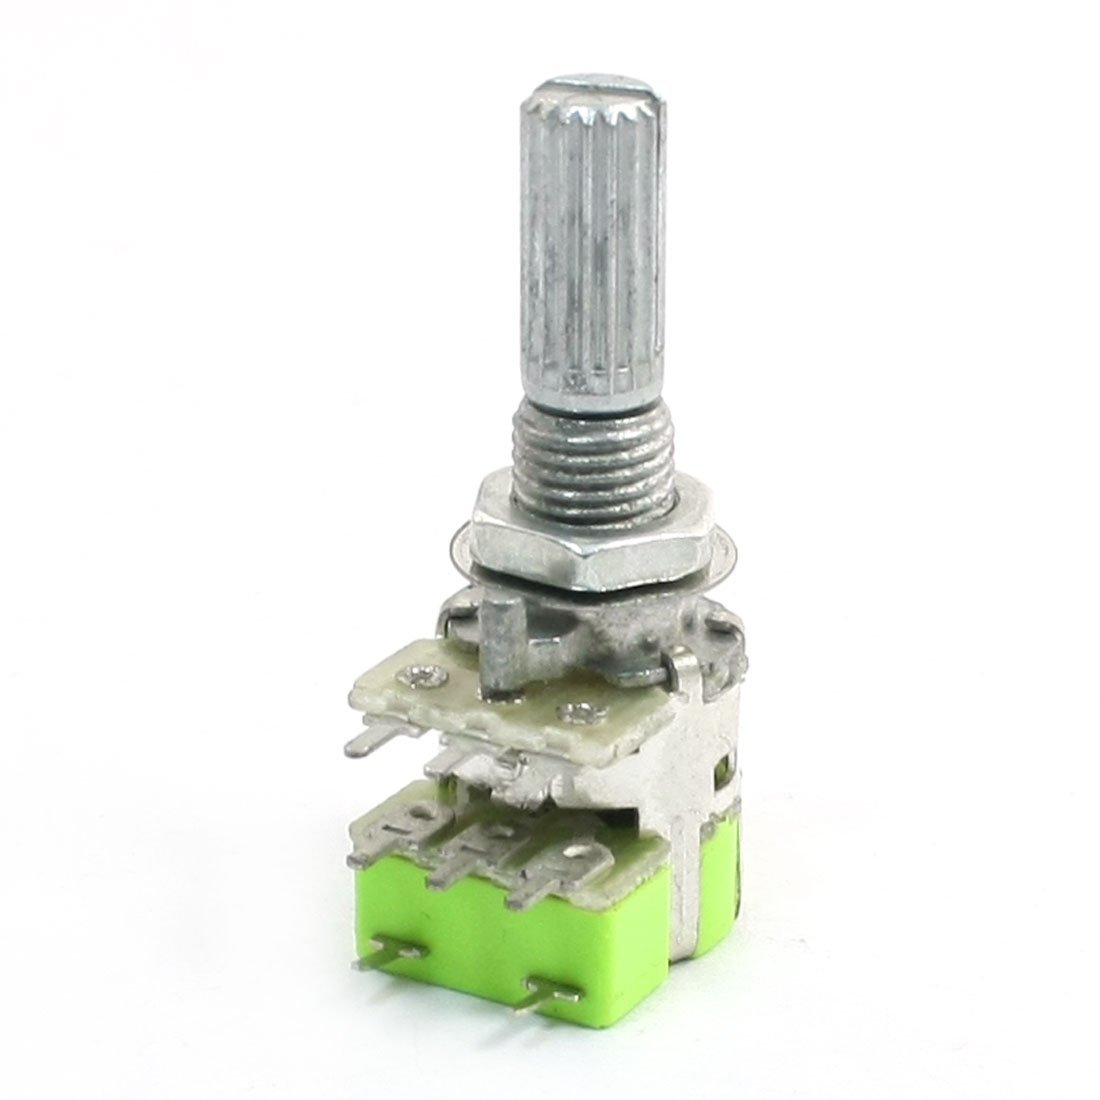 B50K 50K Ohm Dual Linear Taper Volume Control Potentiometer Switch 90118 associated with stepping potentiometer b50k 40 points